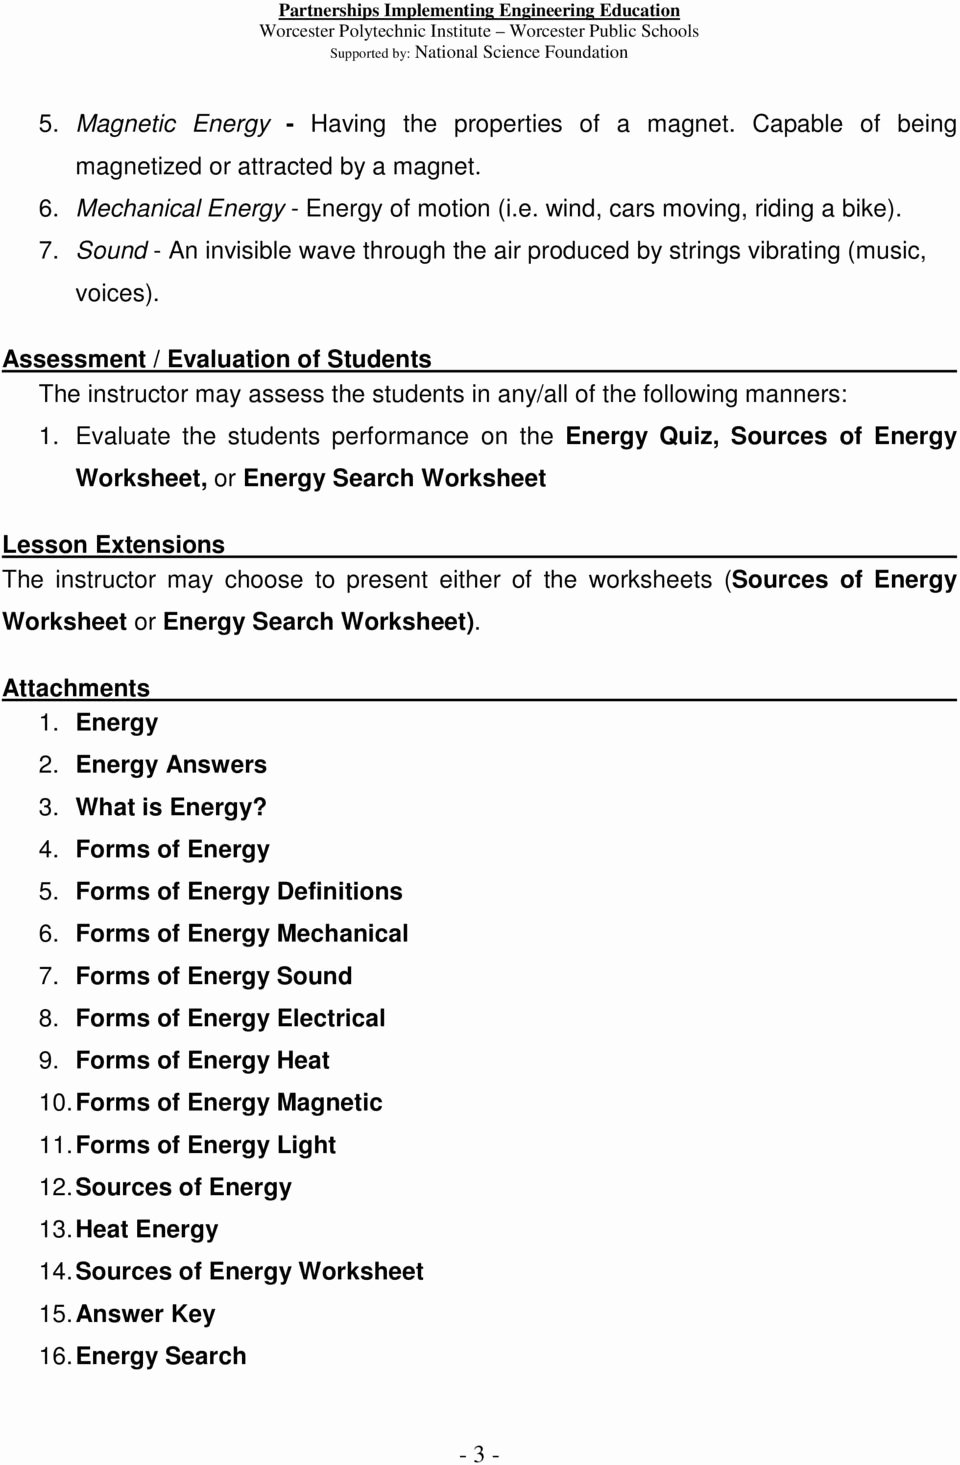 Introduction to Energy Worksheet Answers Elegant Introduction to Energy Worksheet Answer Key and forms